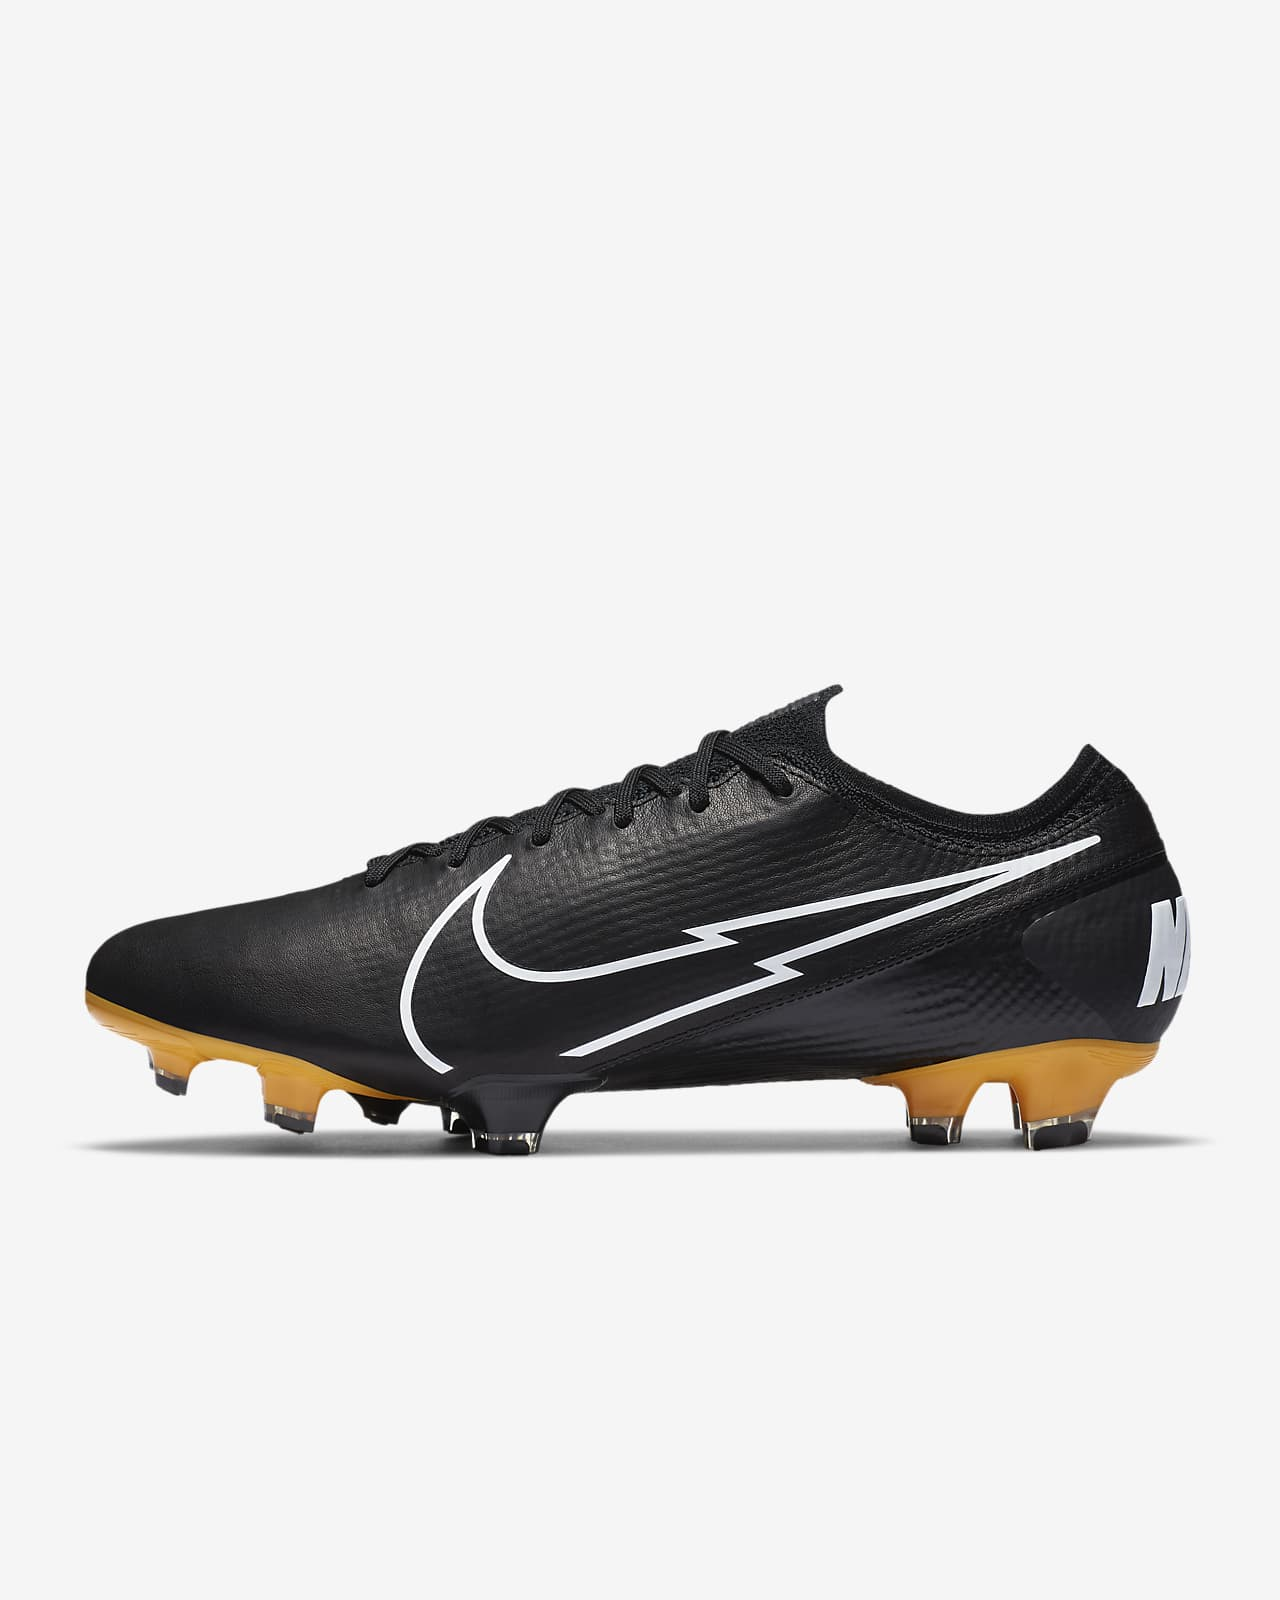 Chaussure de football à crampons pour terrain sec Nike Mercurial Vapor 13 Elite Tech Craft FG